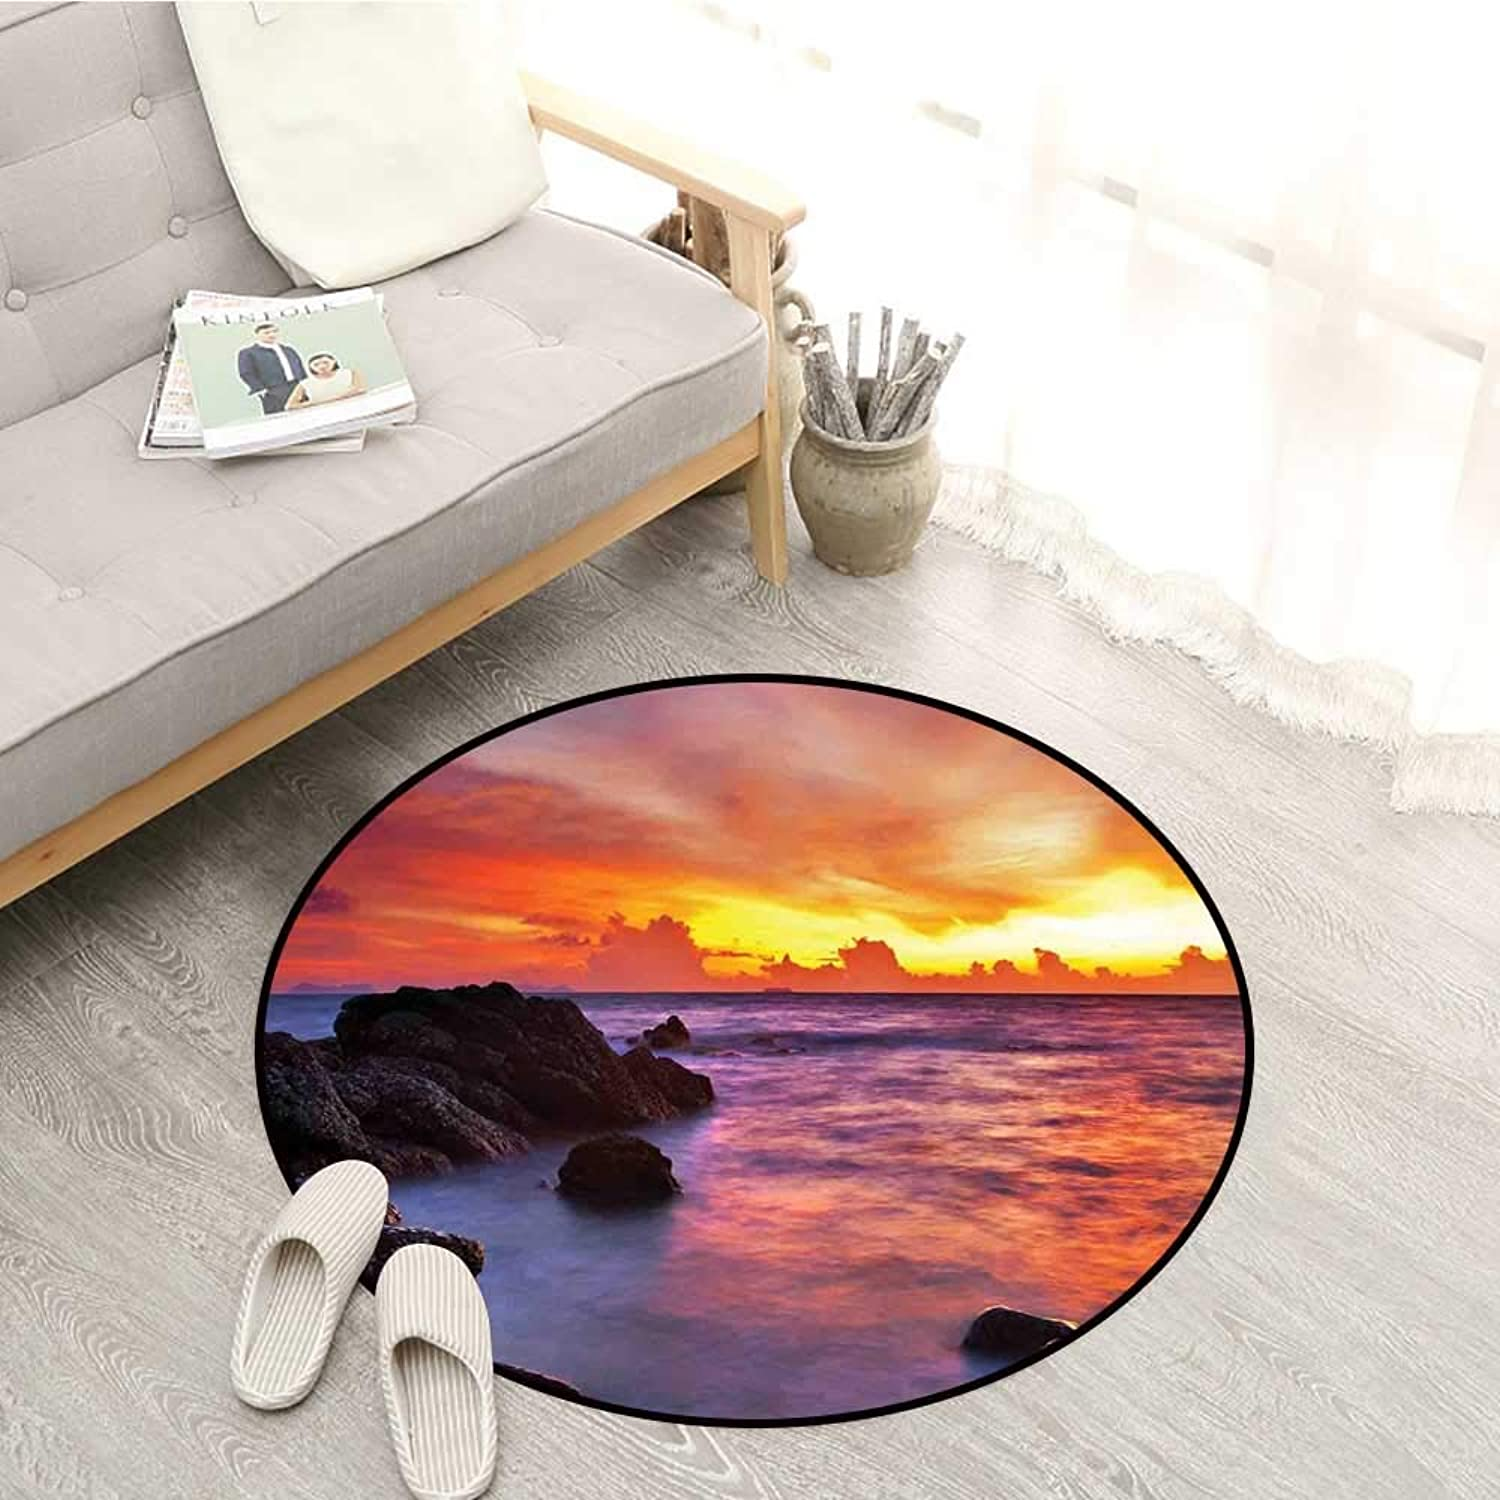 Coastal Decor Living Room Round Rugs Tropical Beach Sunset golden Clouds Stones Calm Sea Summer Seaside Scene Sofa Coffee Table Mat 4'3